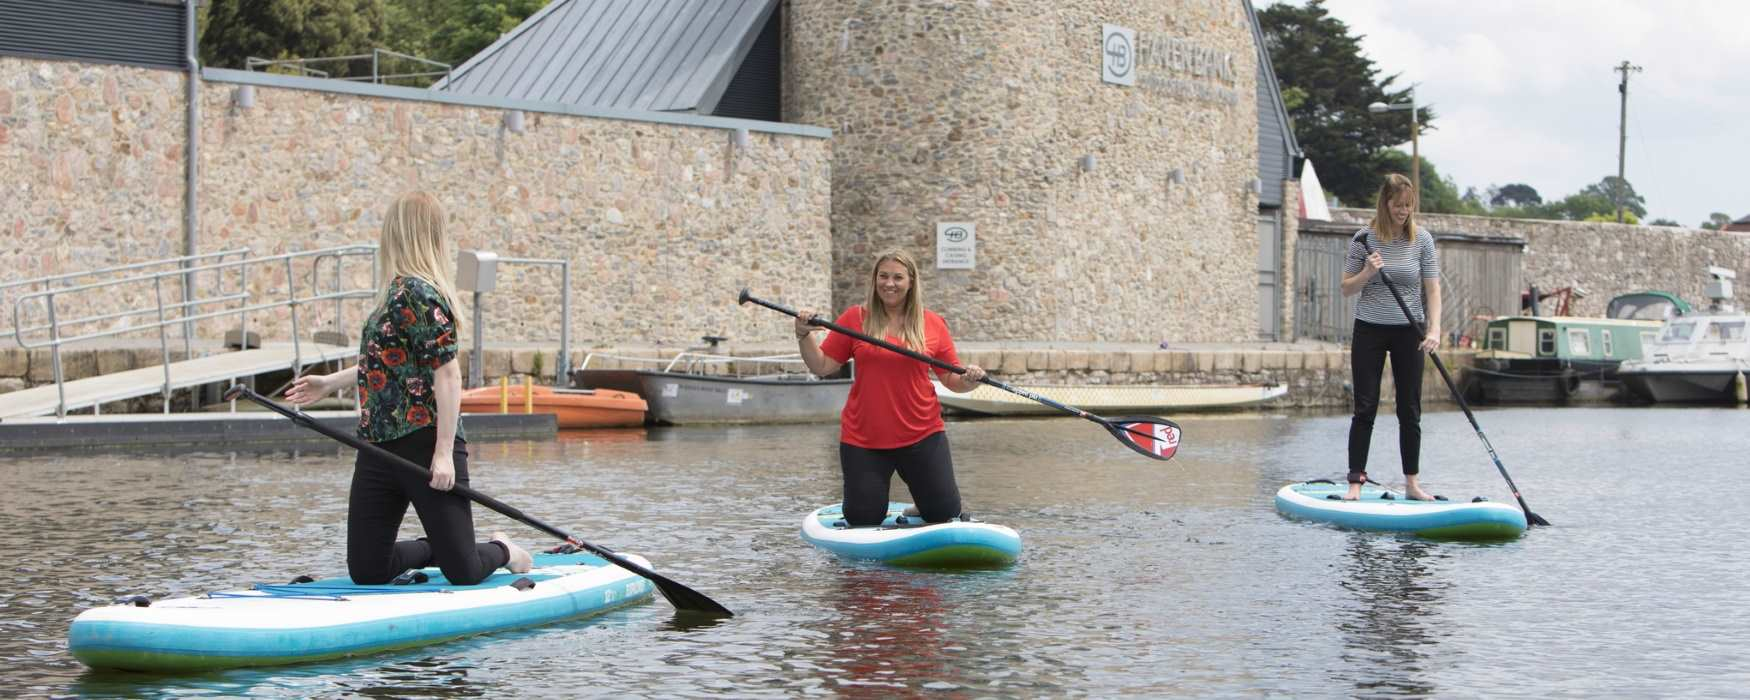 Paddle-boarding at Haven Banks